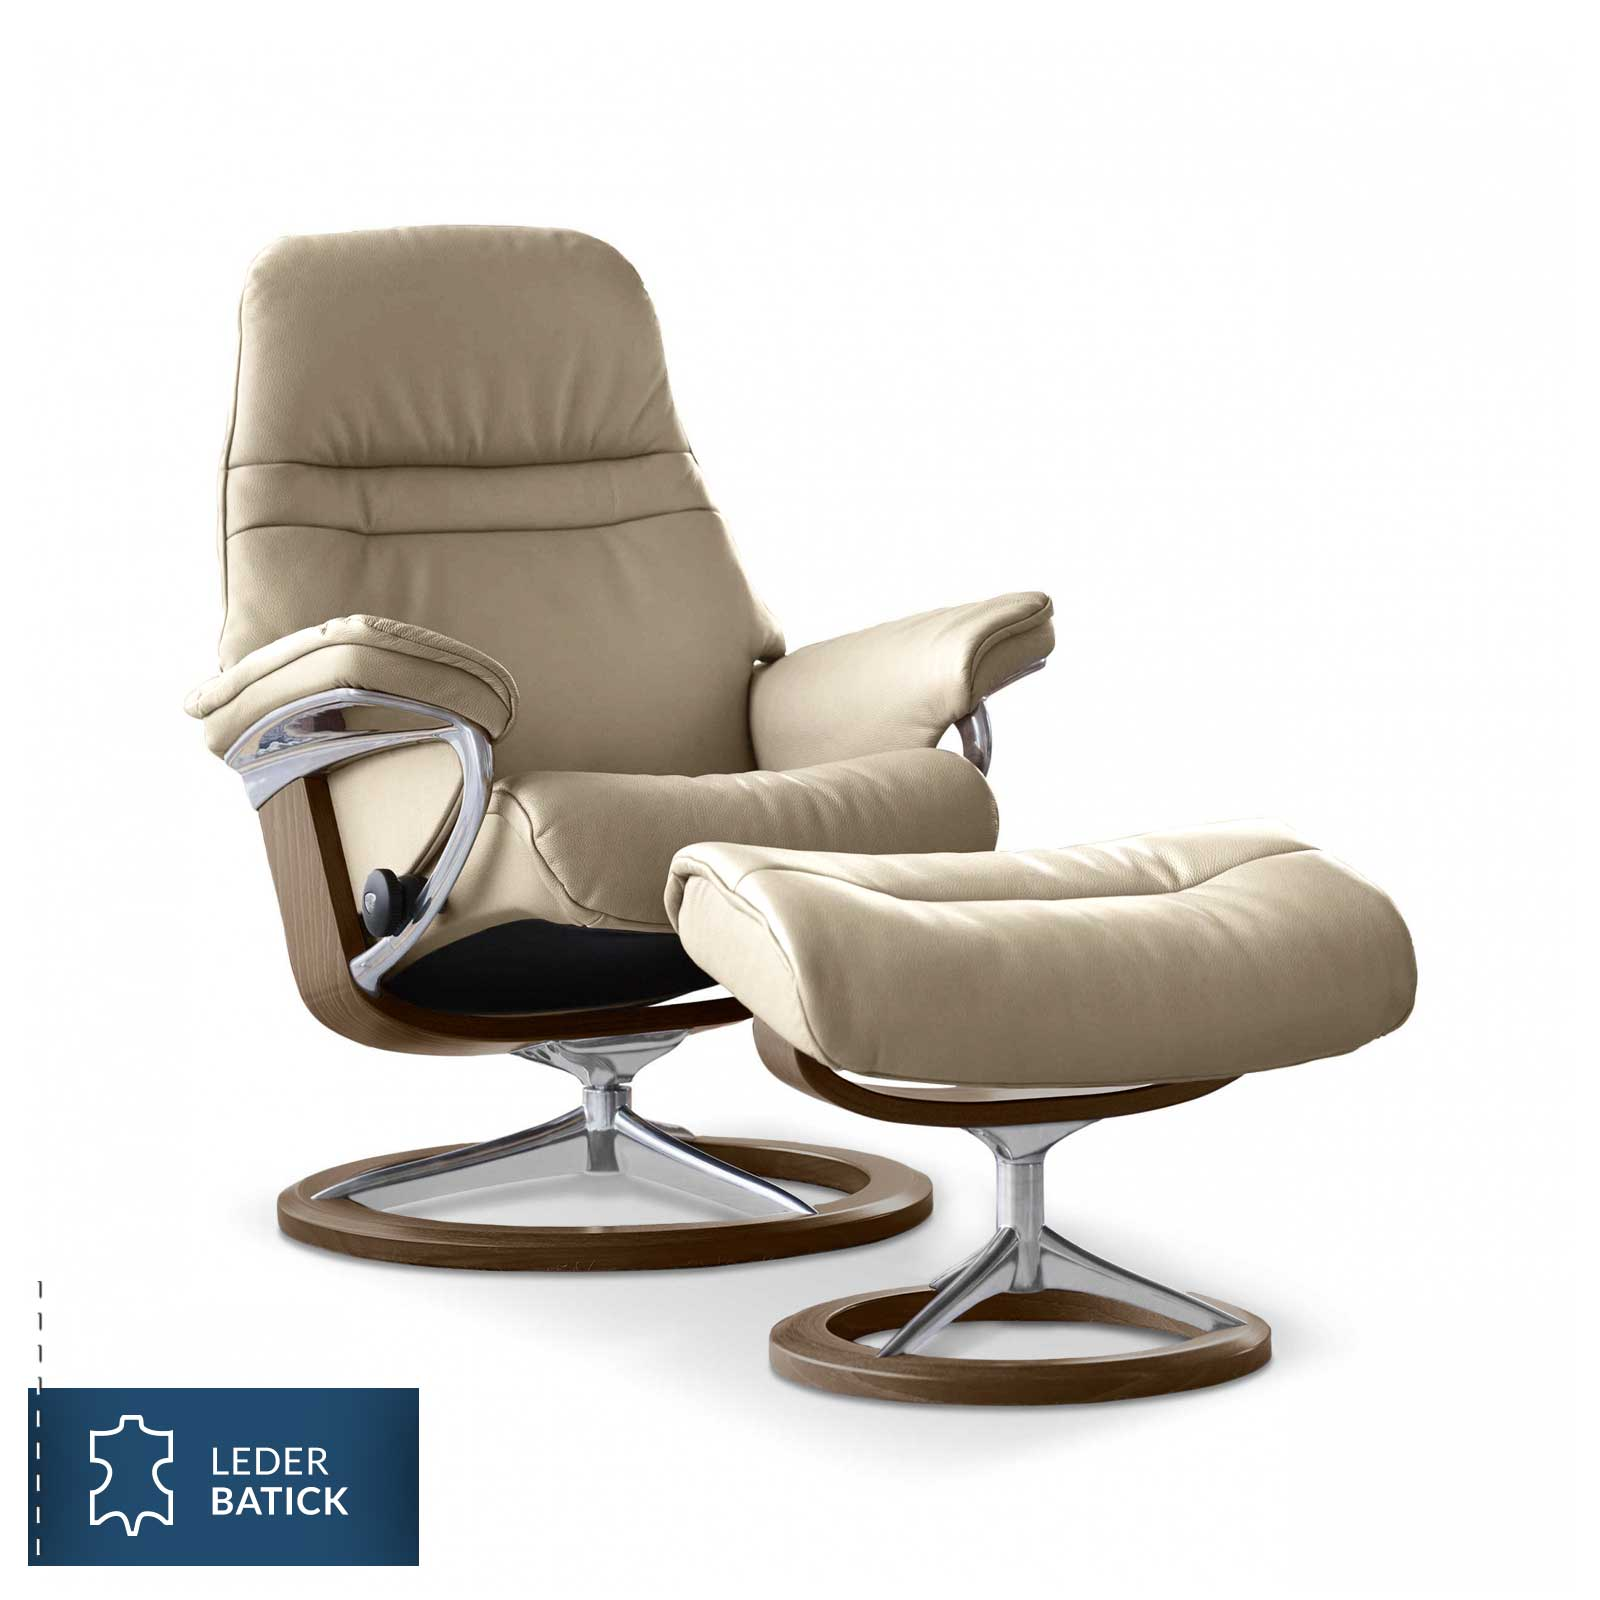 Stressless Sessel City Stressless Sessel Sunrise Signature Batick Cream | Stressless